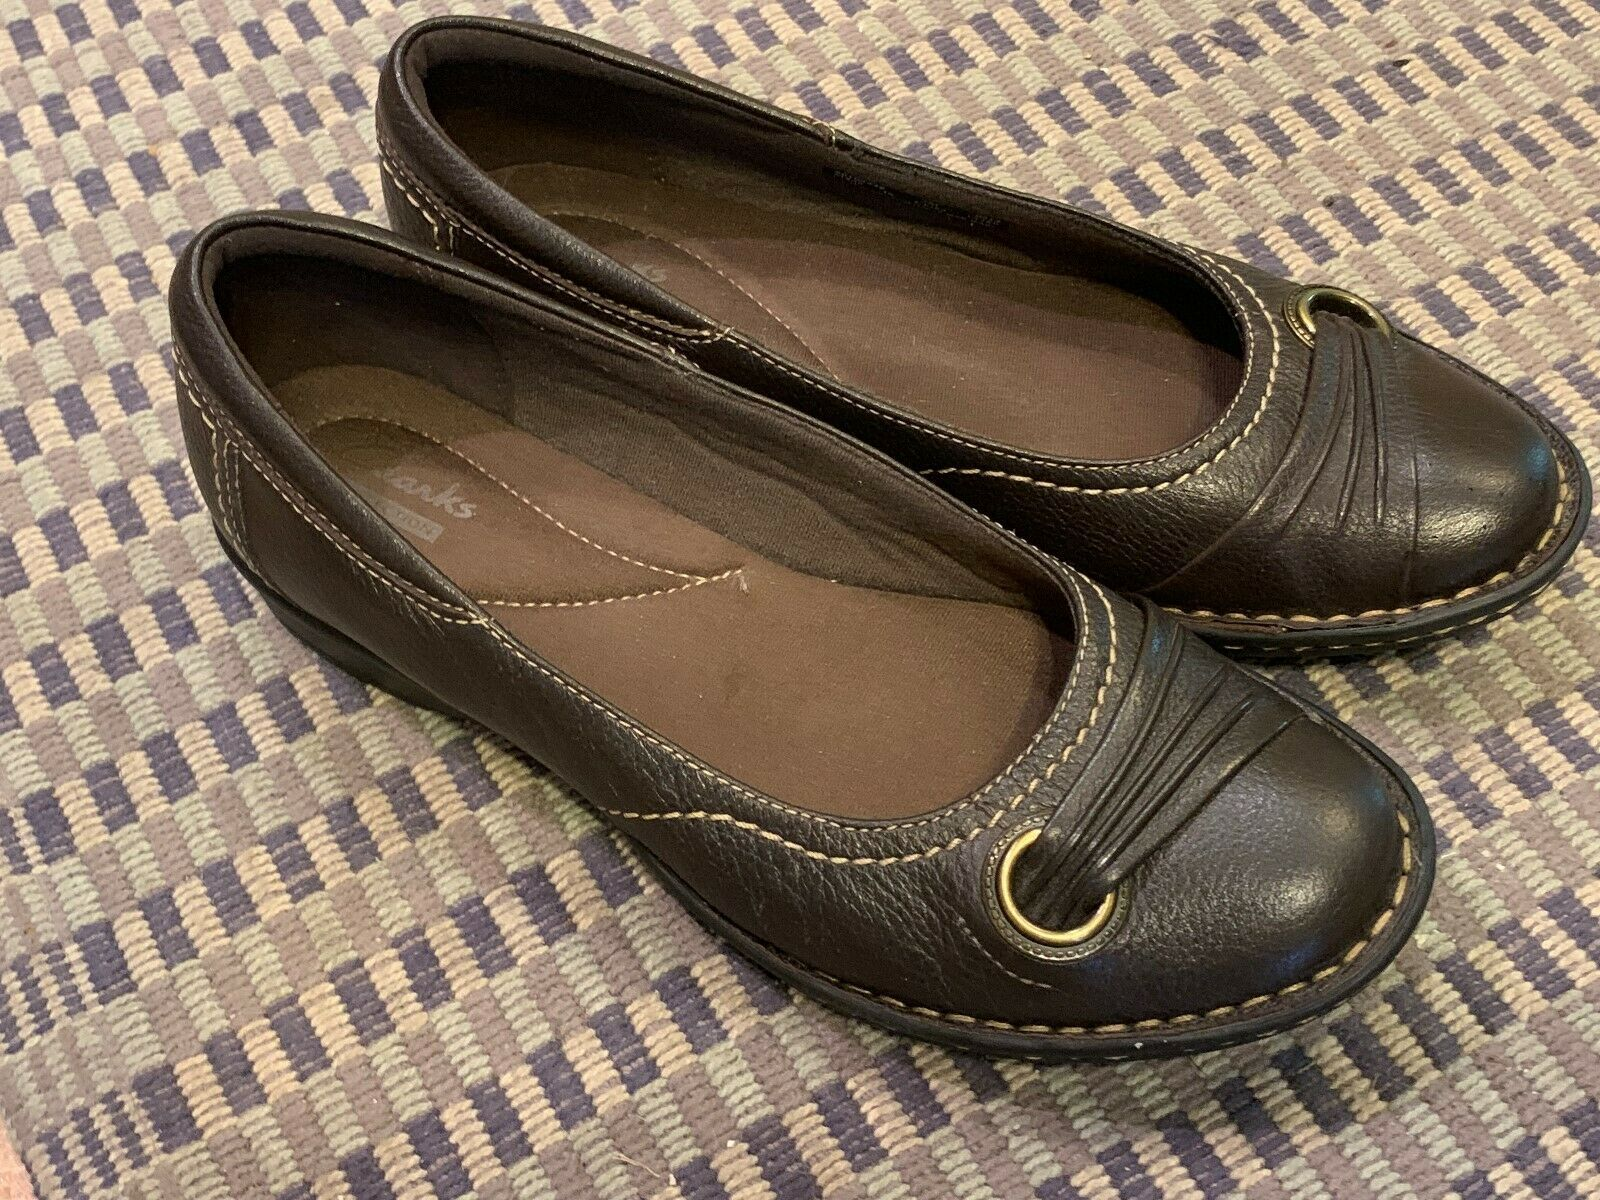 CLARKS RECENT DRIVE DUTCHESS BALLET FLATS 7 M SLIP ON BROWN LEATHER LOAFER LN